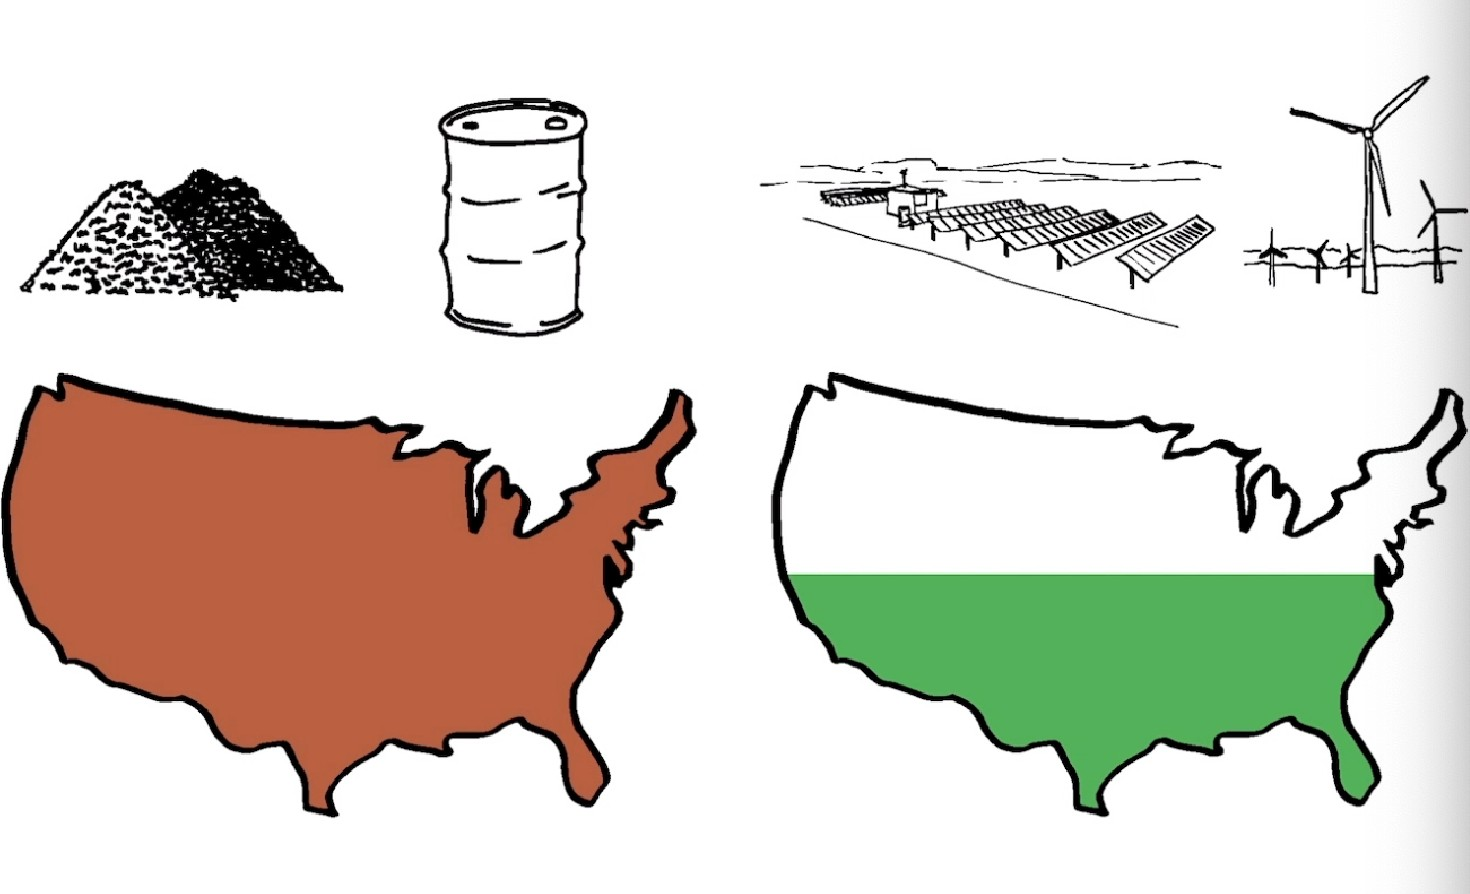 A vision of the United States, past brown and future green versions, from Saul Griffith's presentation at VERGE Electrify 21.